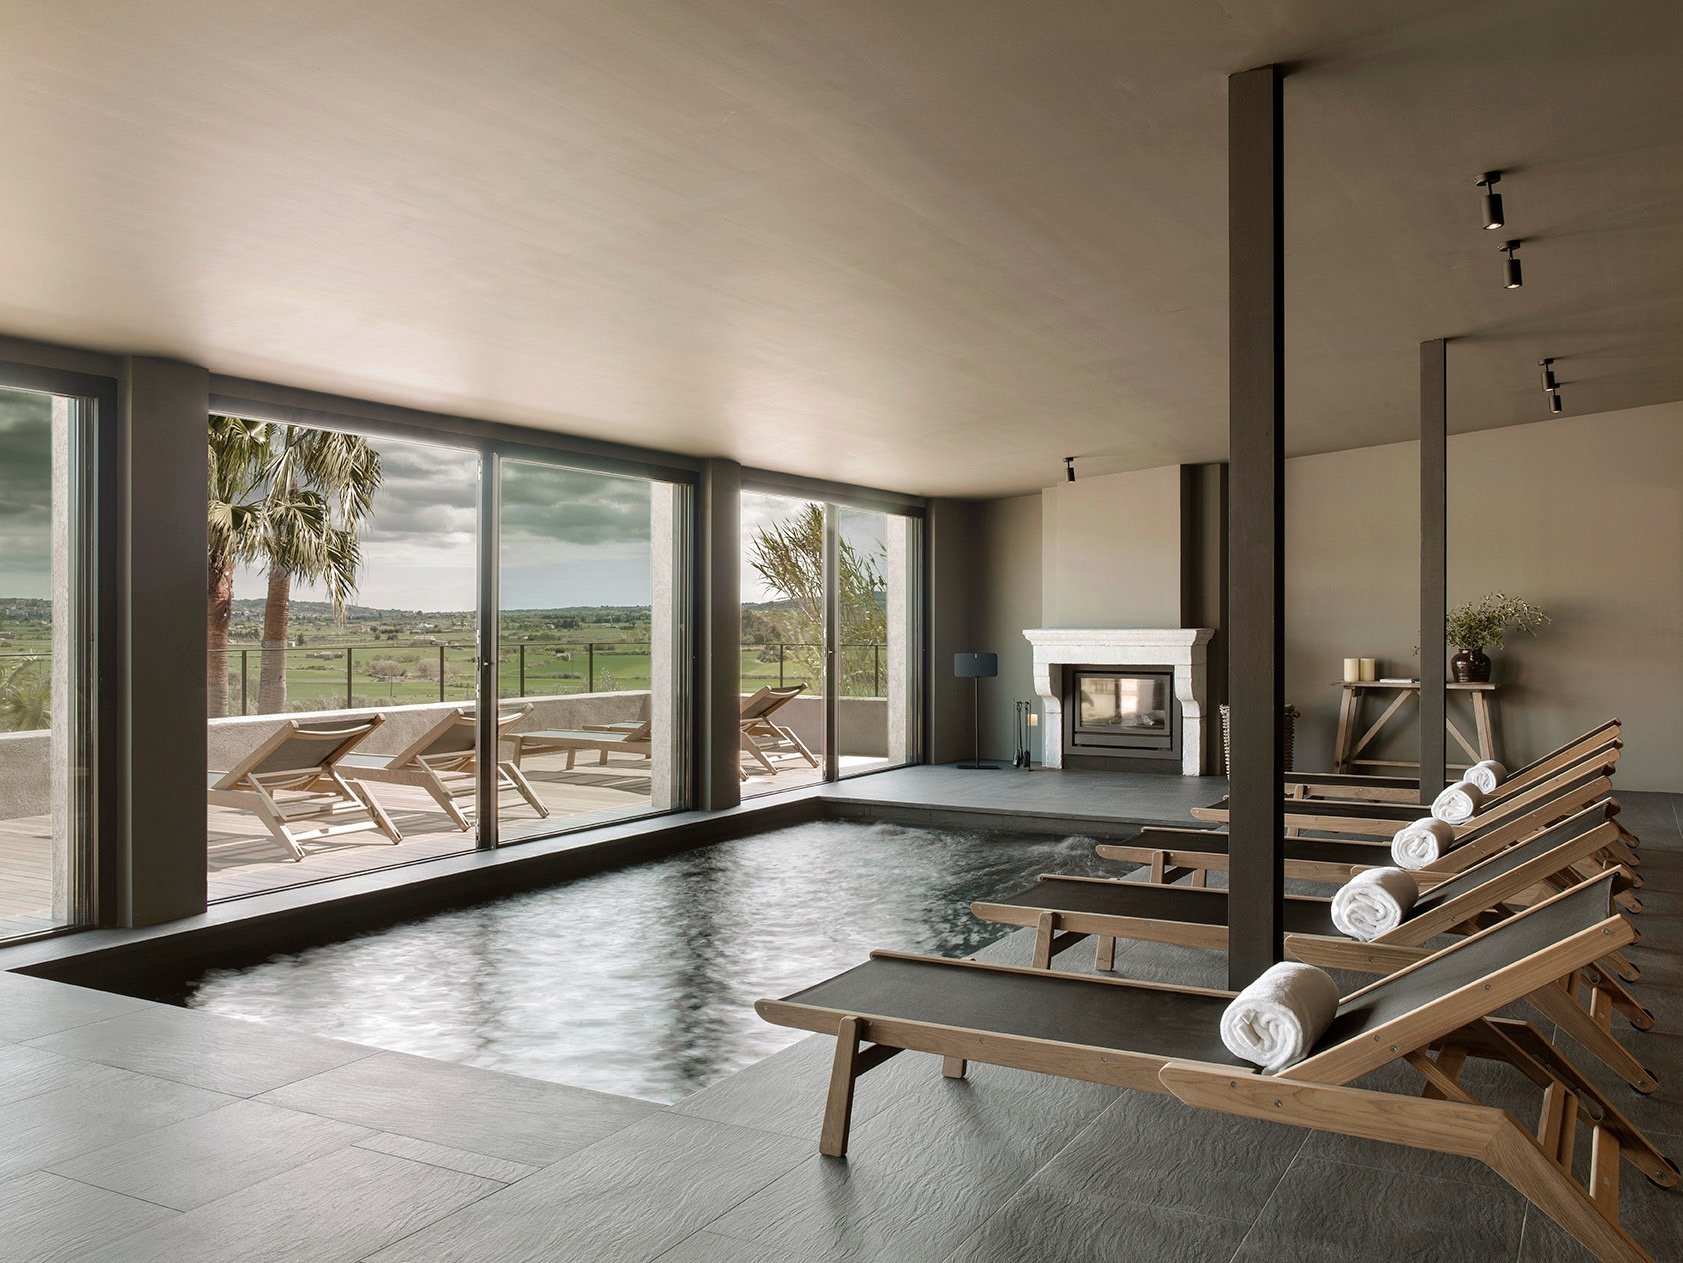 The Wellness Spa at Finca Serena Mallorca